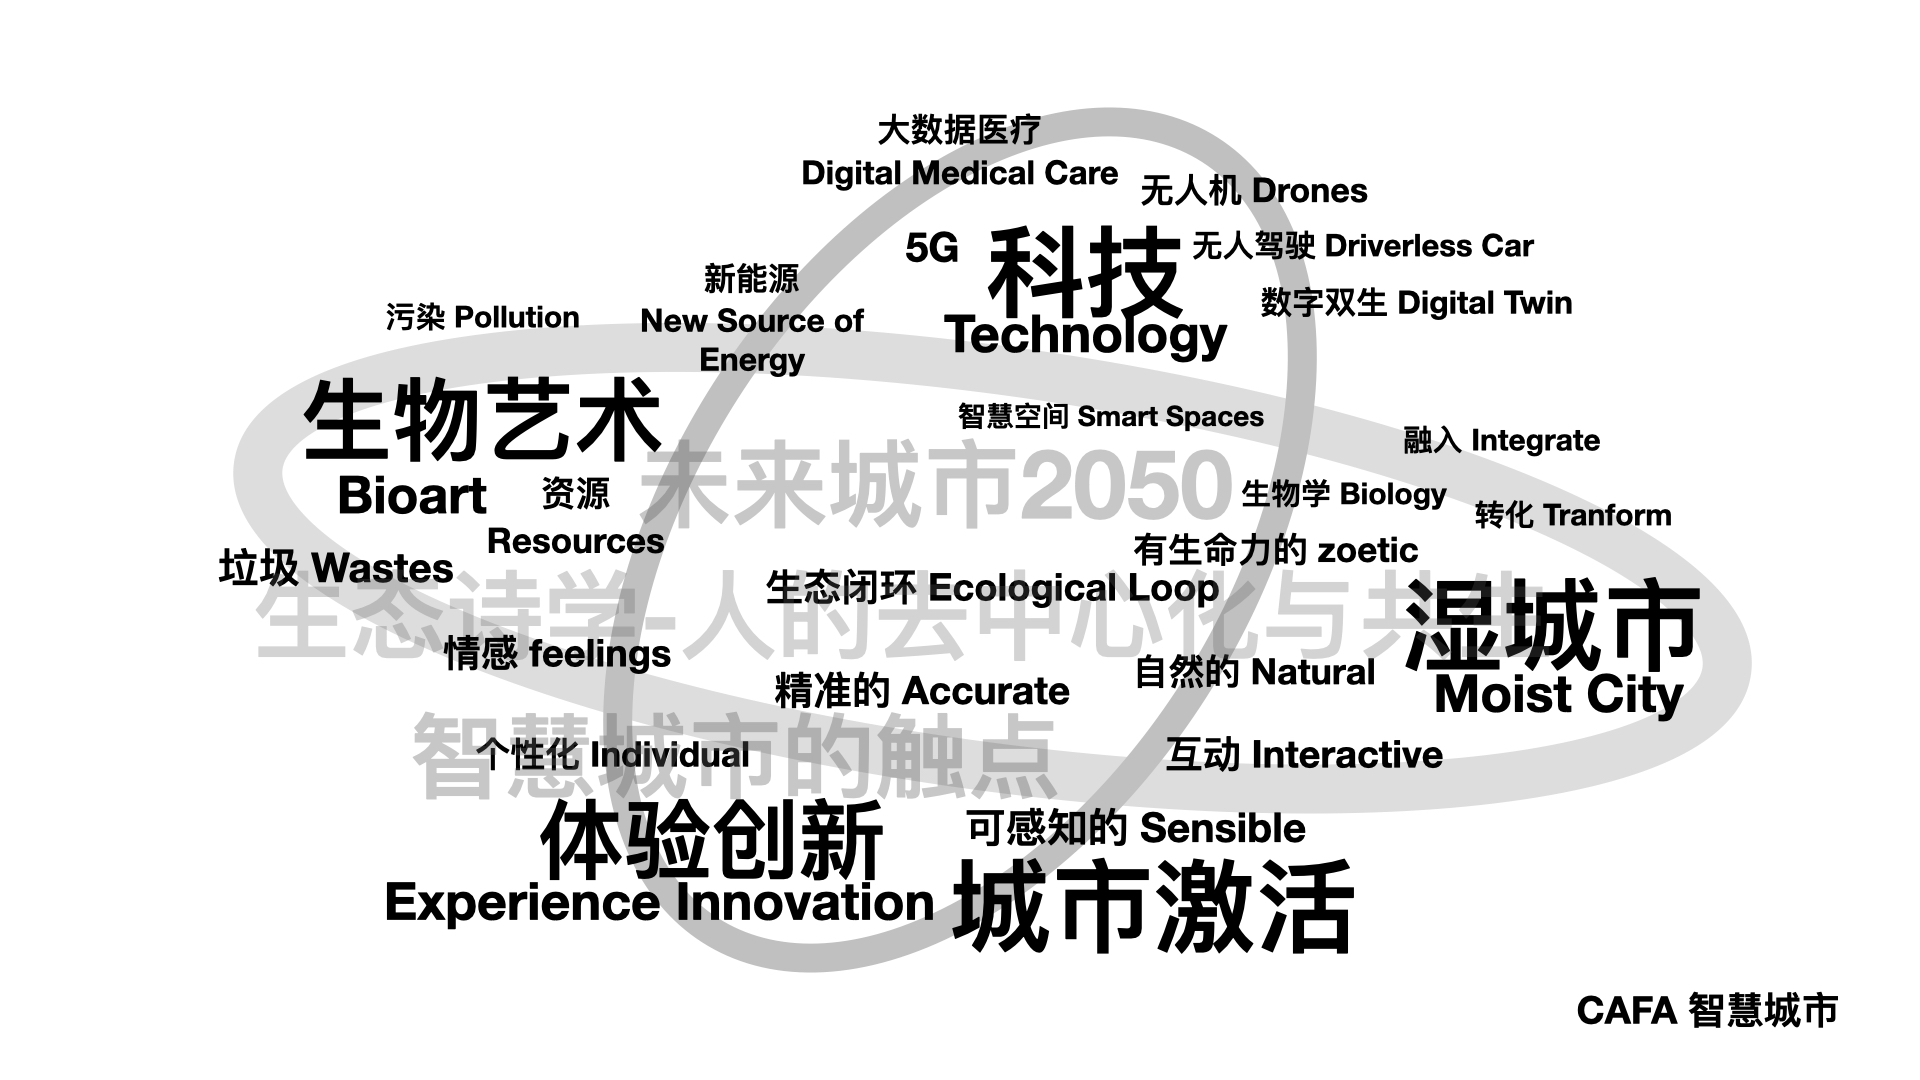 03 The current research network for the smart city.jpg